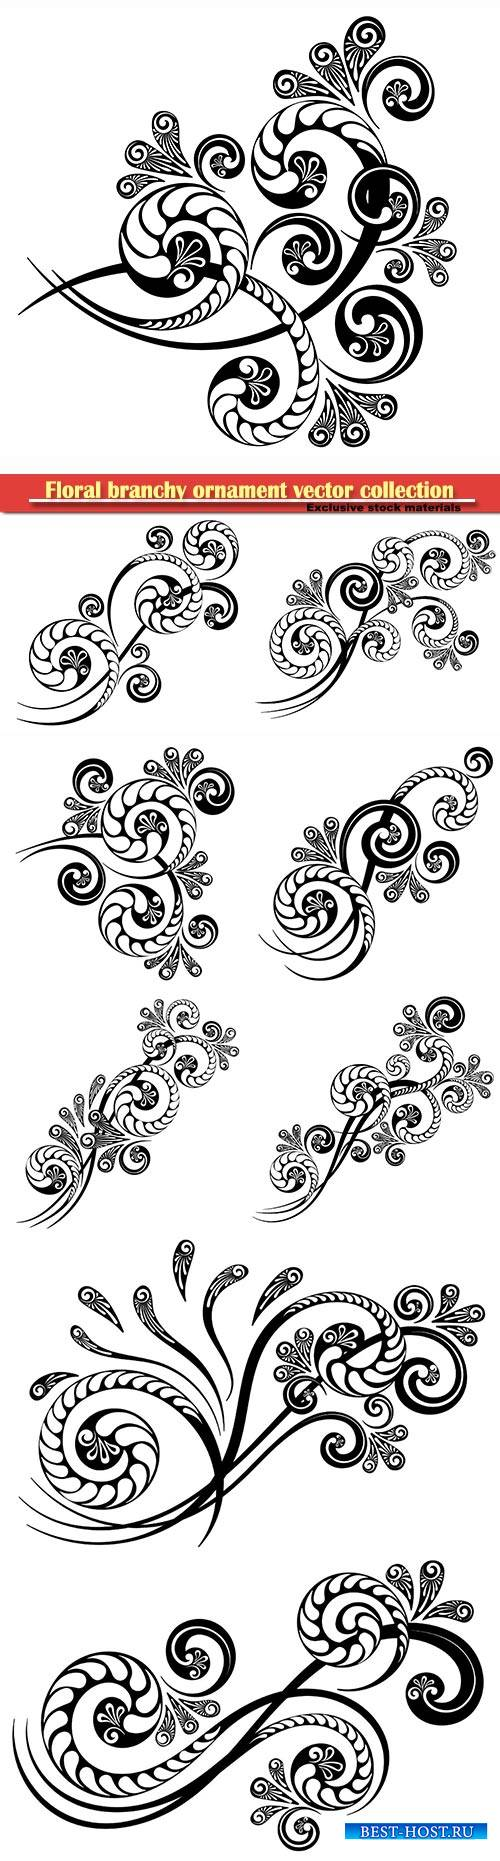 Floral branchy ornament with a beautiful complex pattern for decorative des ...